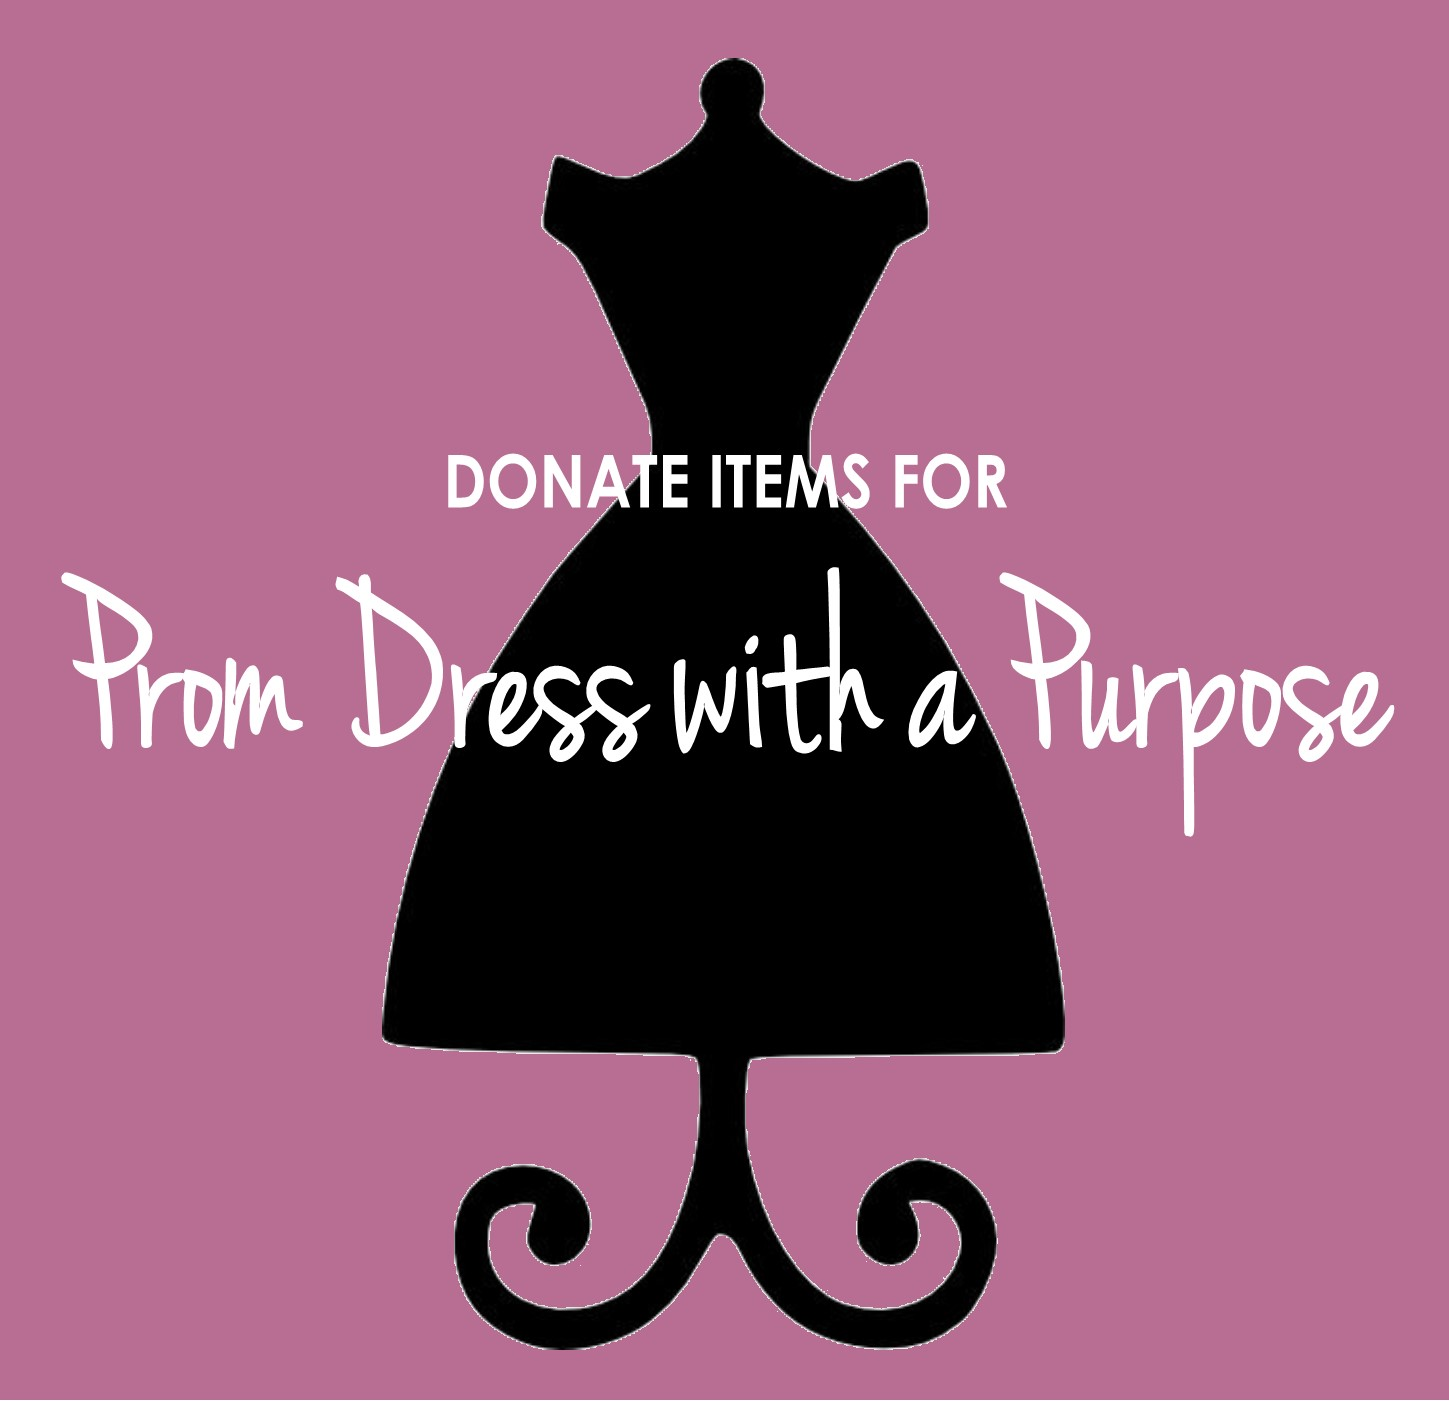 Contact us if you would like to donate new or gently used: - ~ Dresses~ Shoes~ Handbags~ Fashion Jewelry~ Other special occasion items